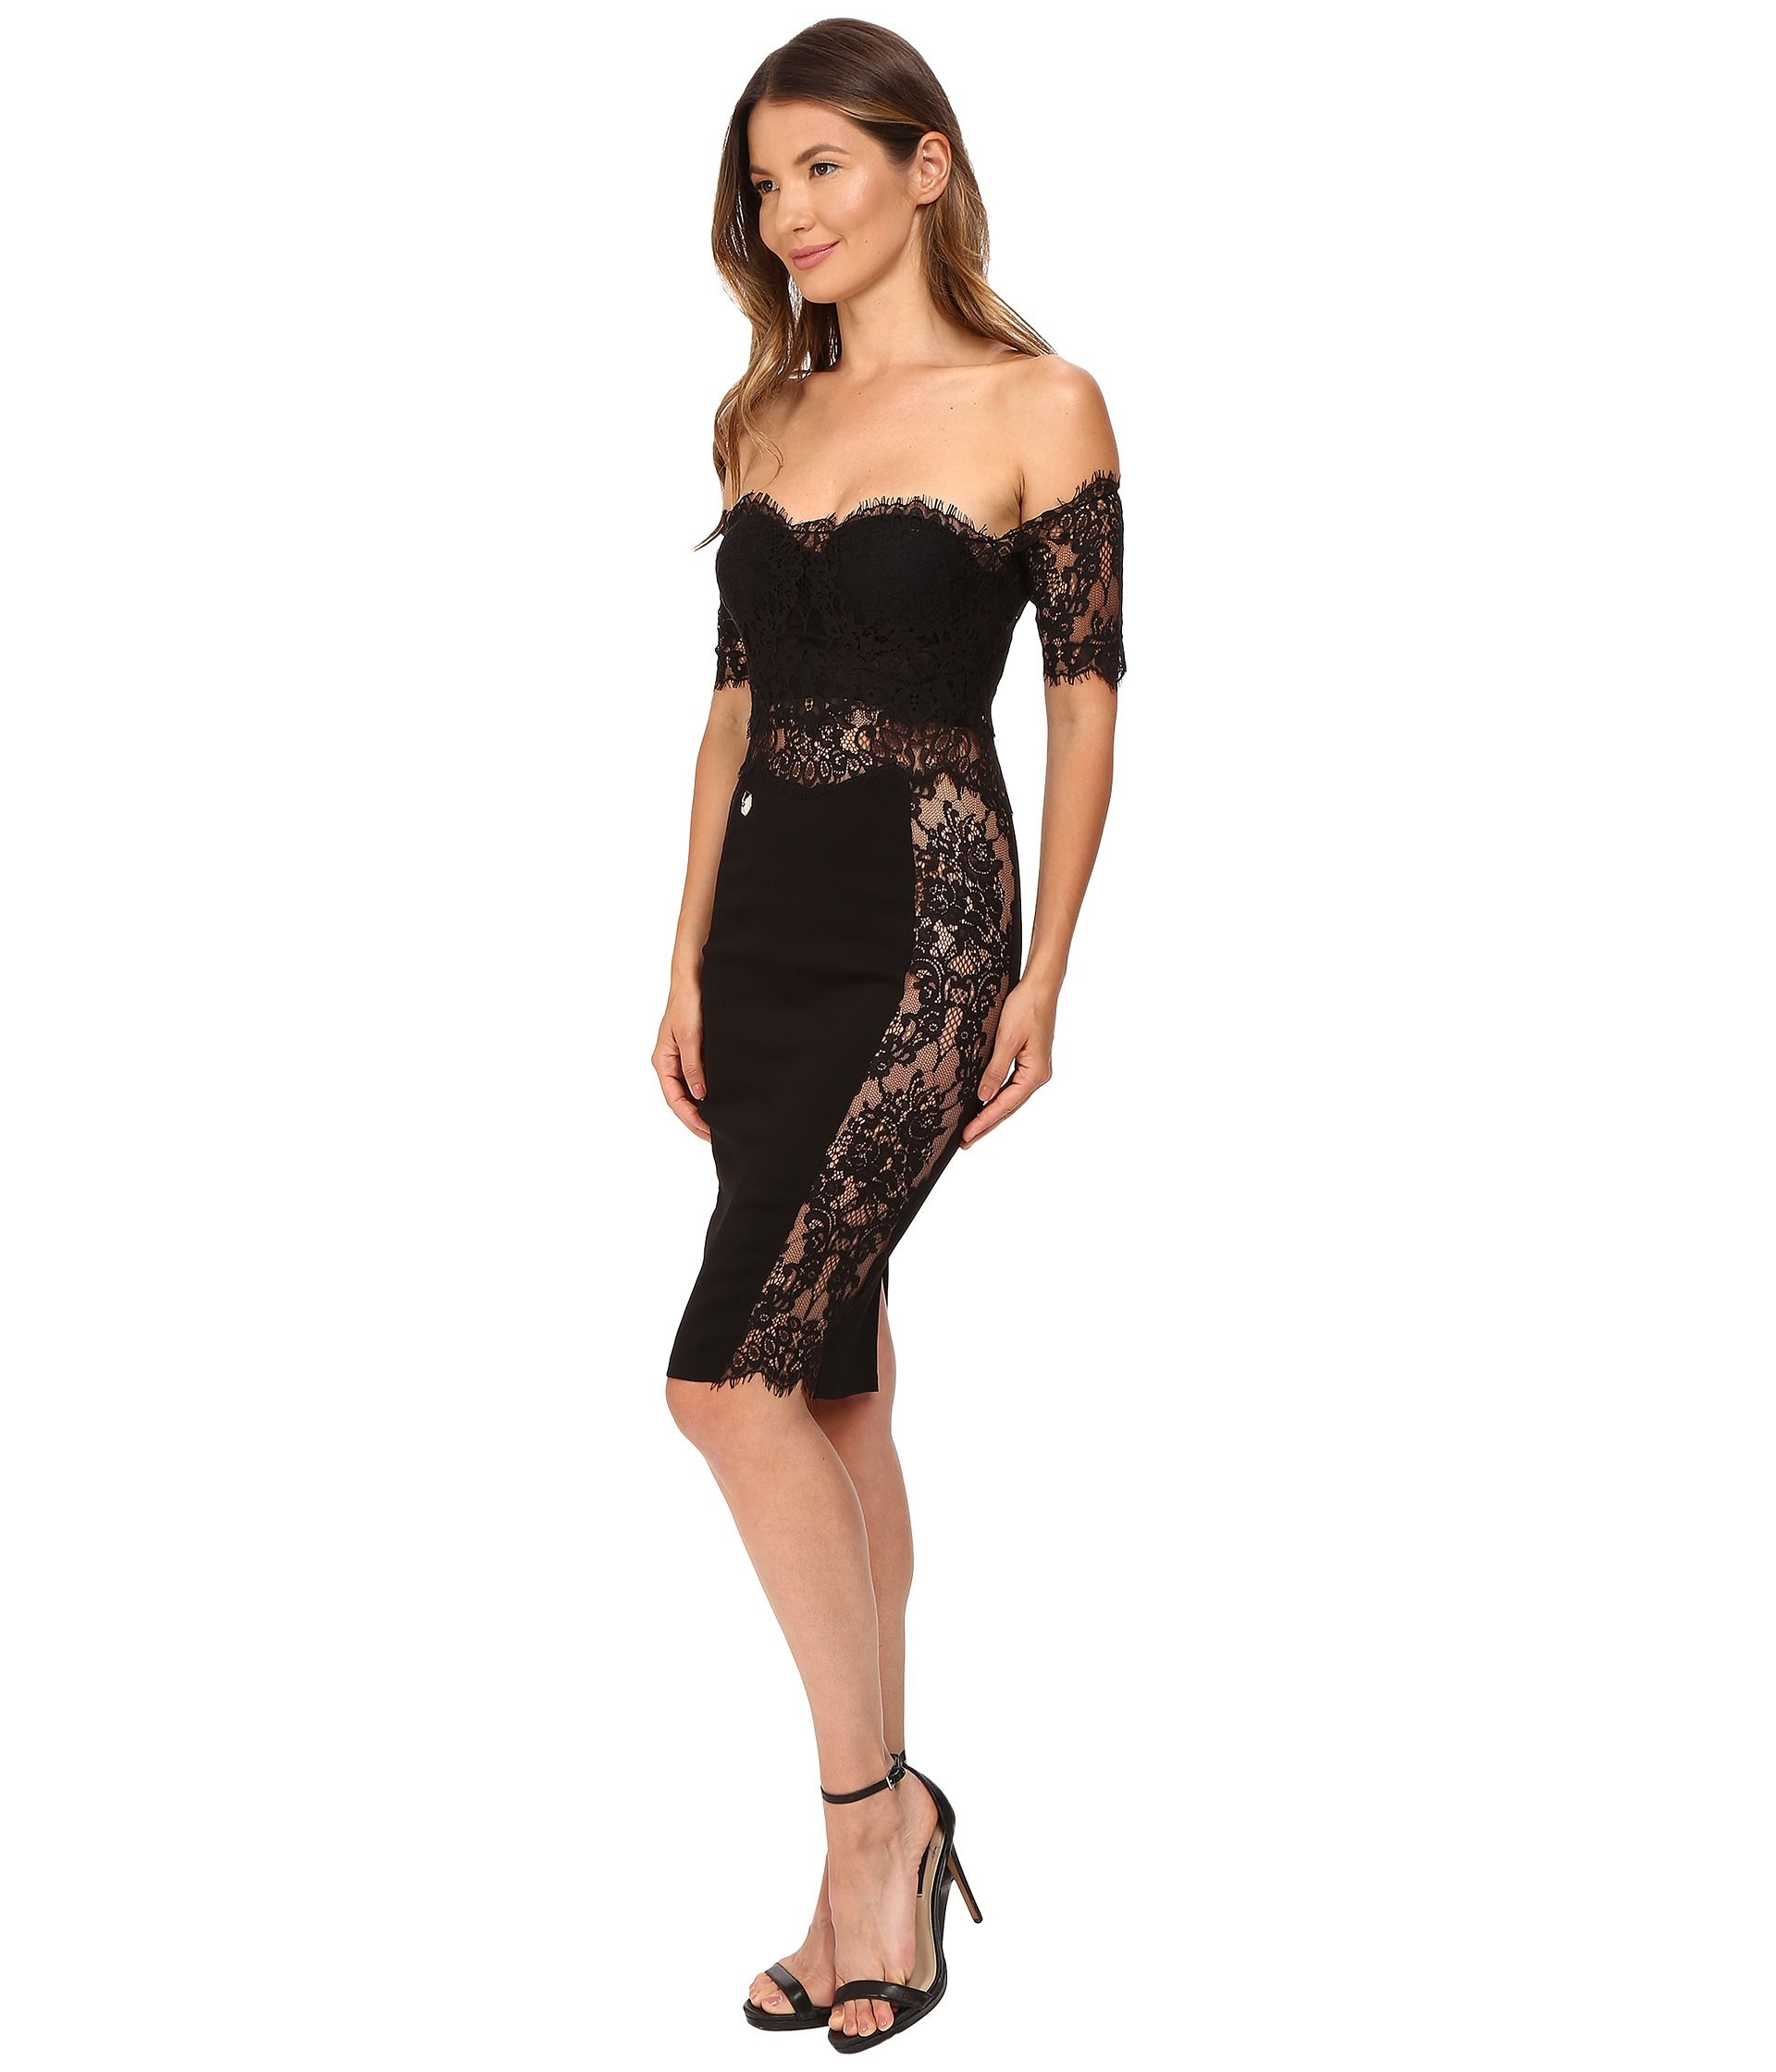 N G S: Philipp Plein Off the Shoulder Placed Lace Dress